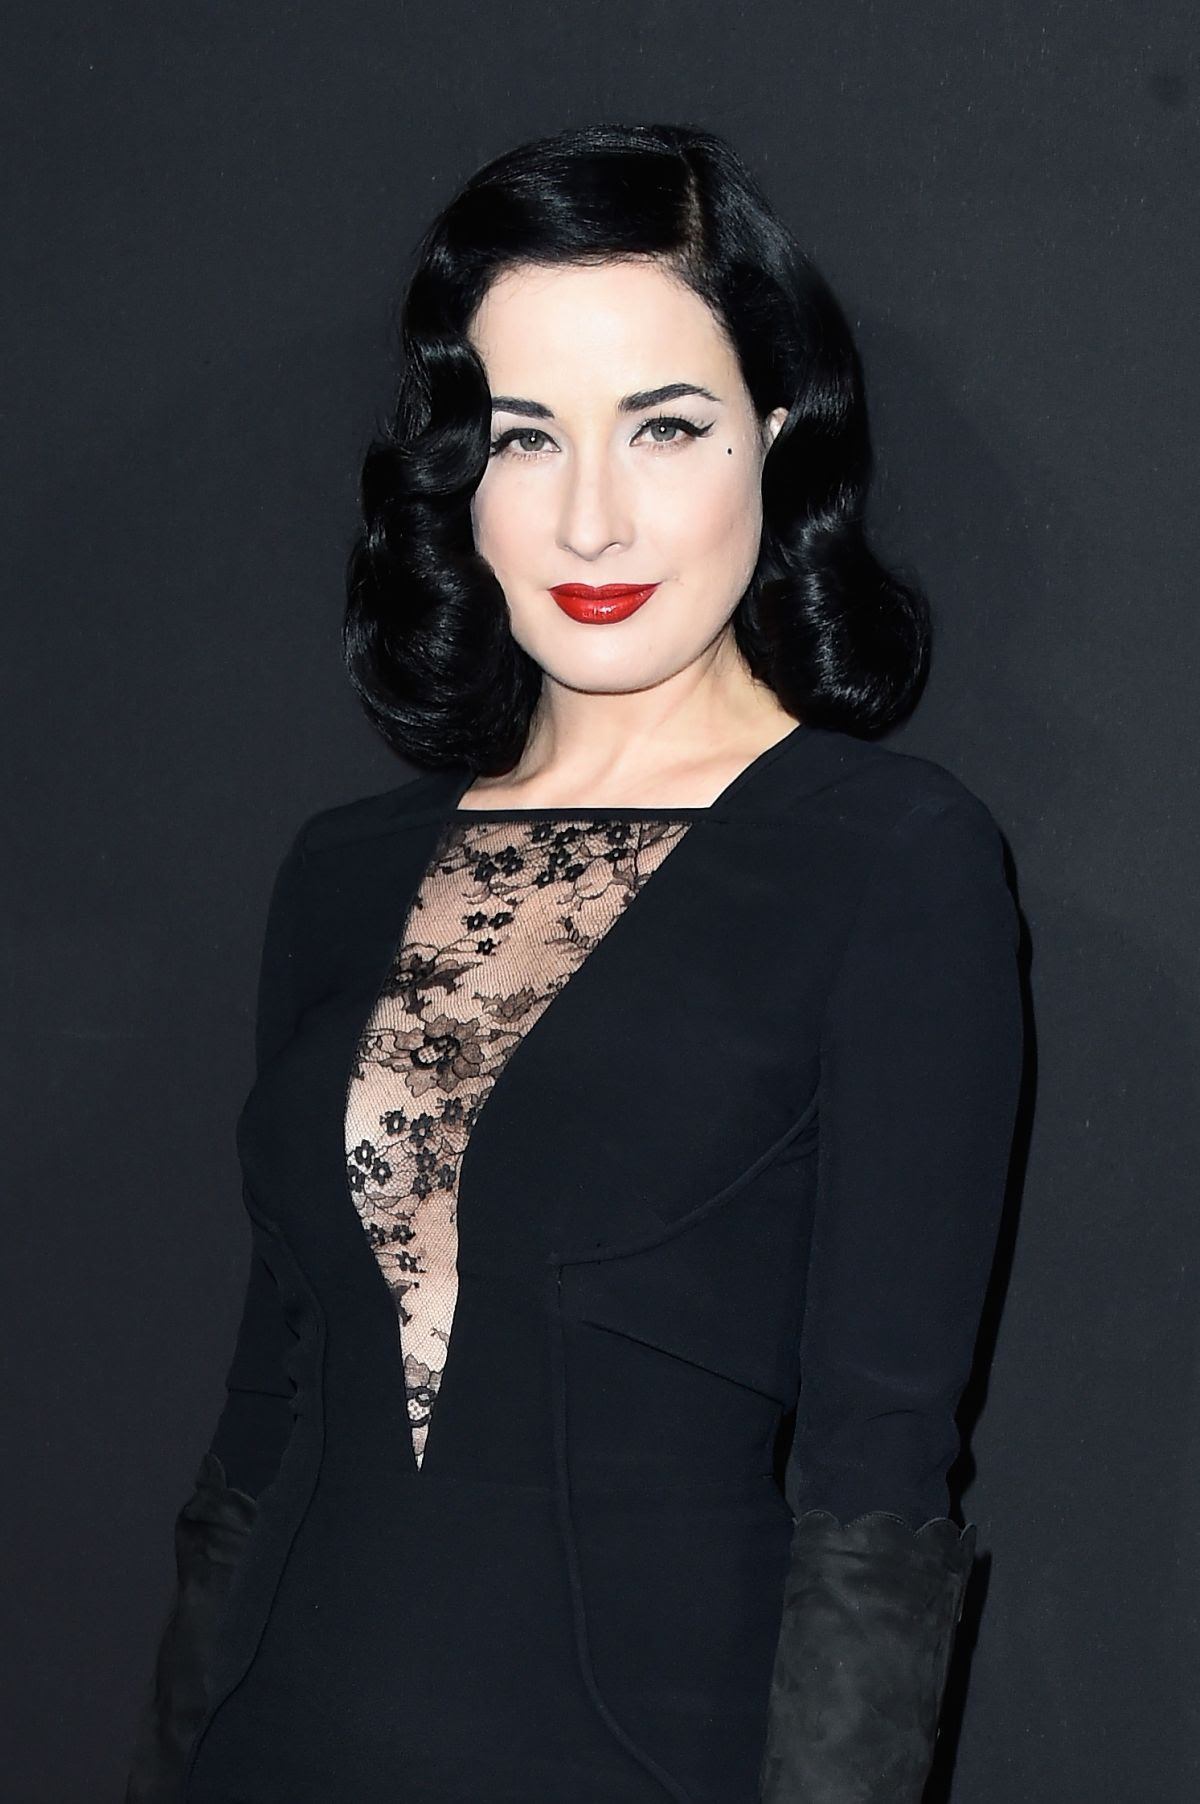 DITA VON TEESE at Elie Saab Fashion Show in Paris